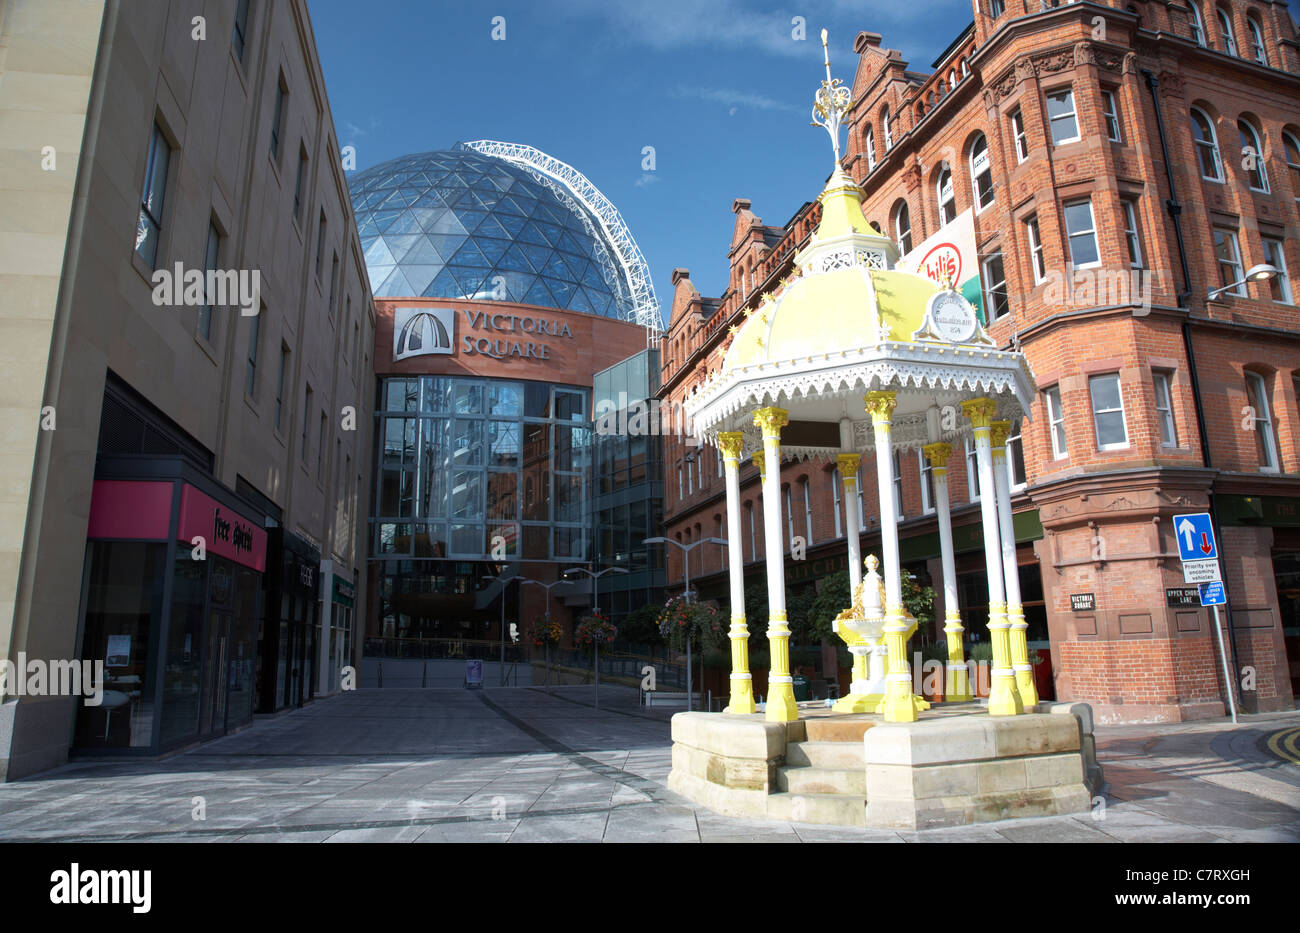 7481f561f39d4 Victoria Square shopping centre with the restored Jaffe Fountain, Belfast,  Northern Ireland, UK.